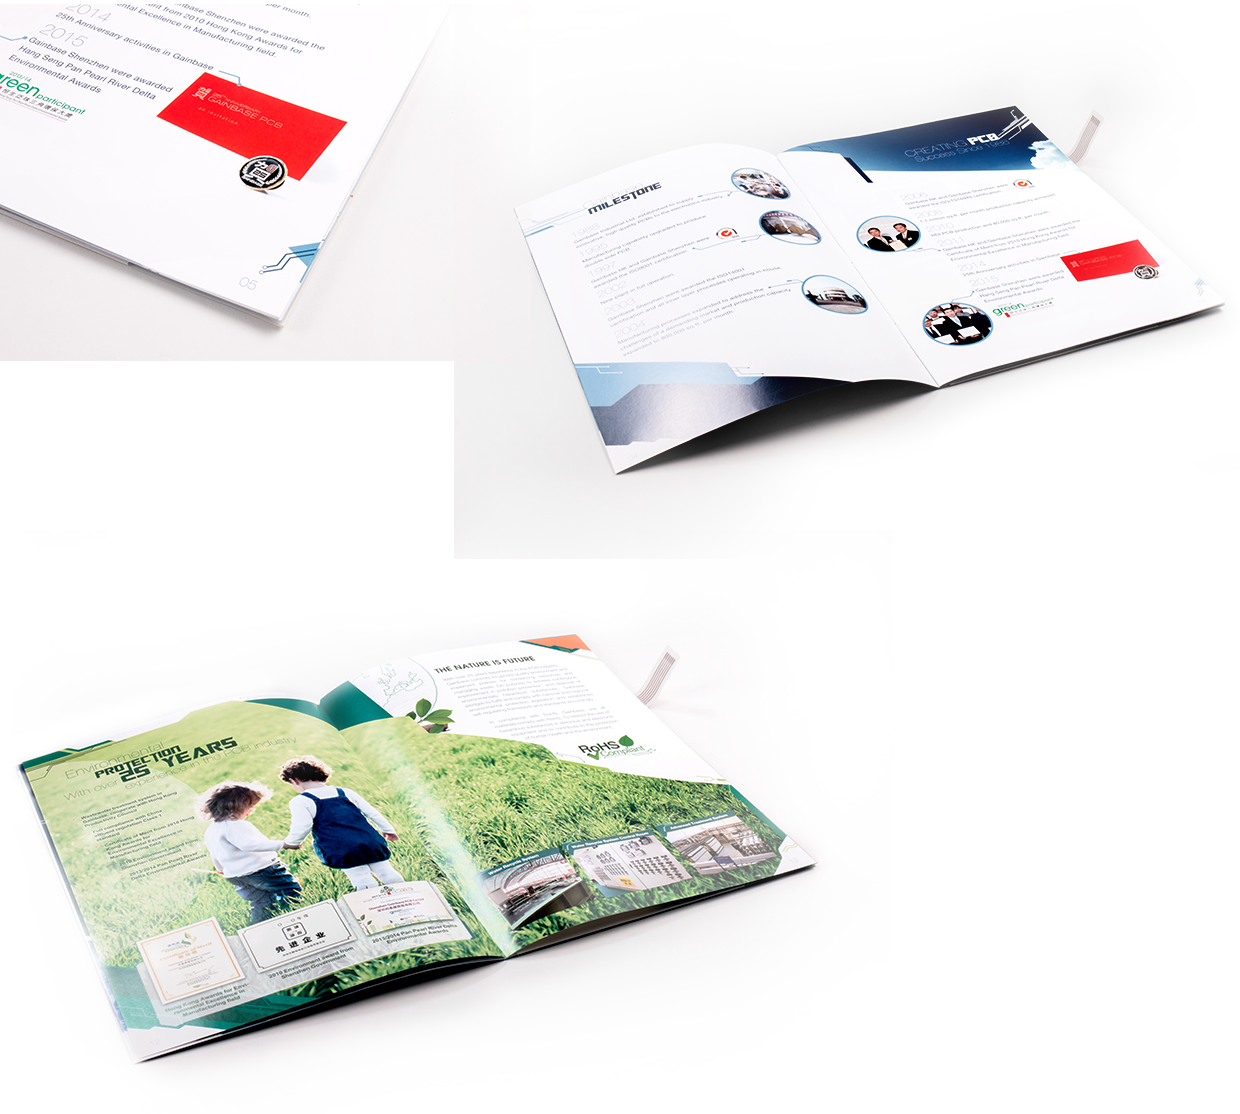 Gainbase Brochure 2015